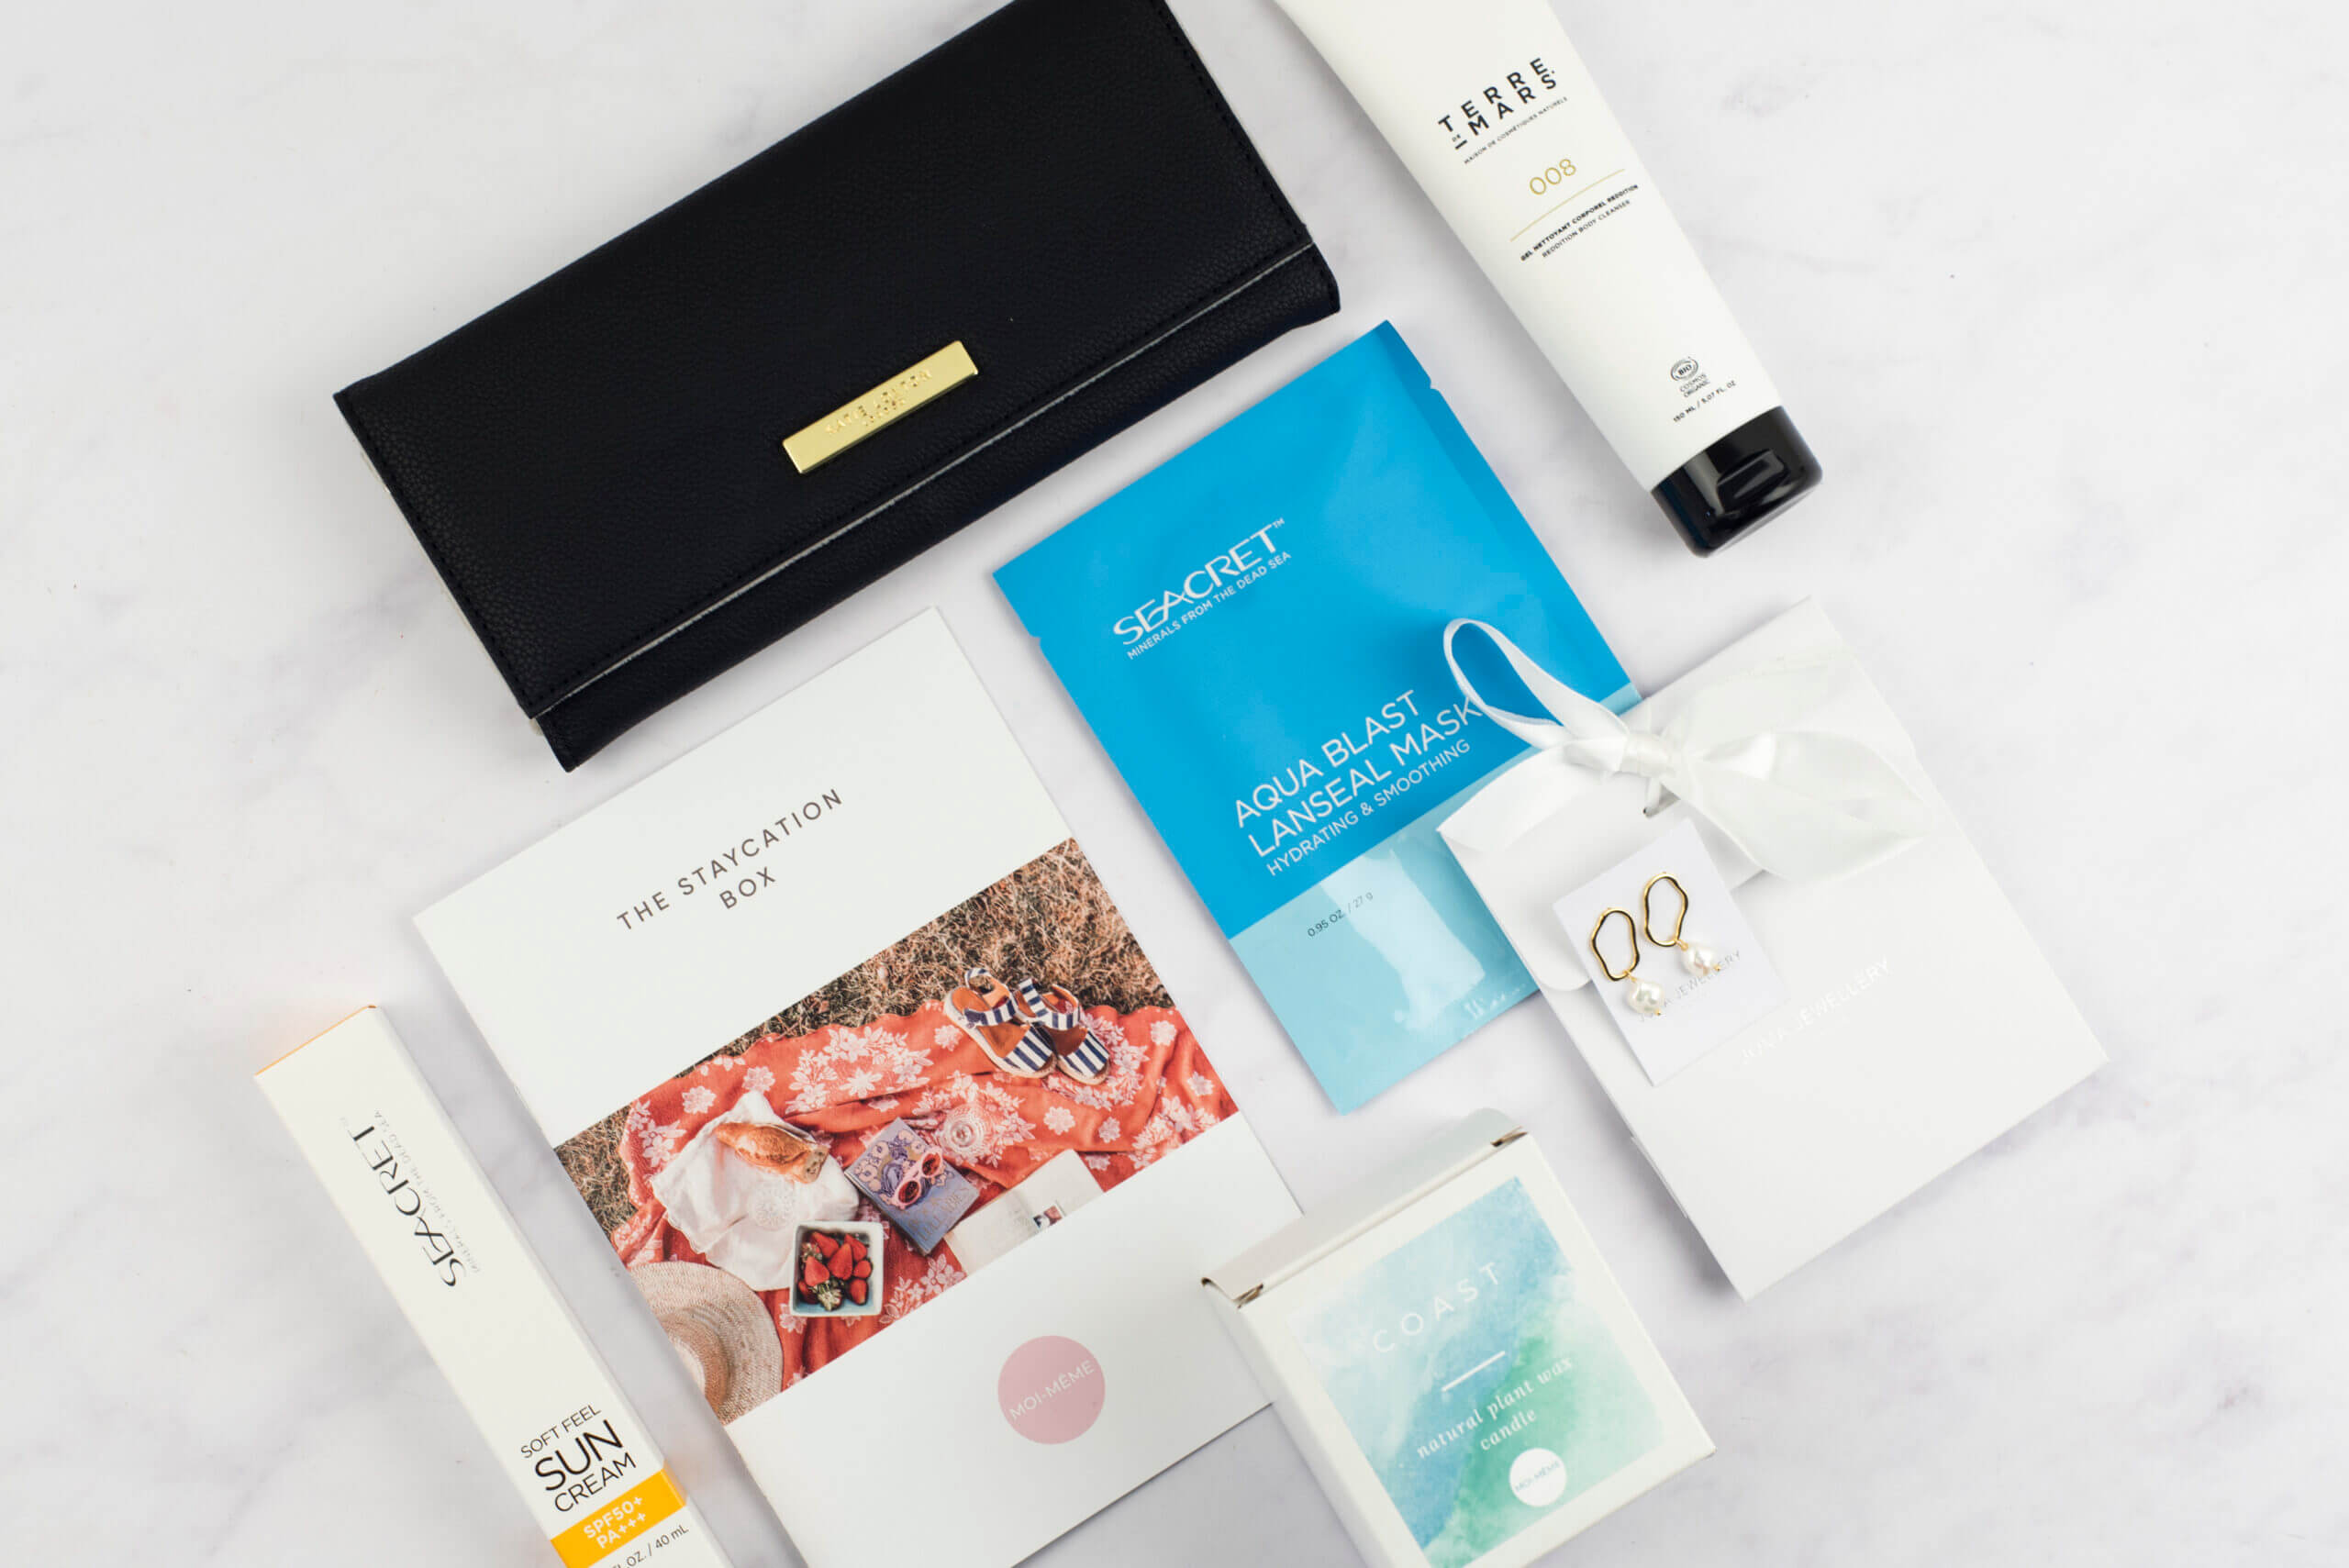 The Staycation Box